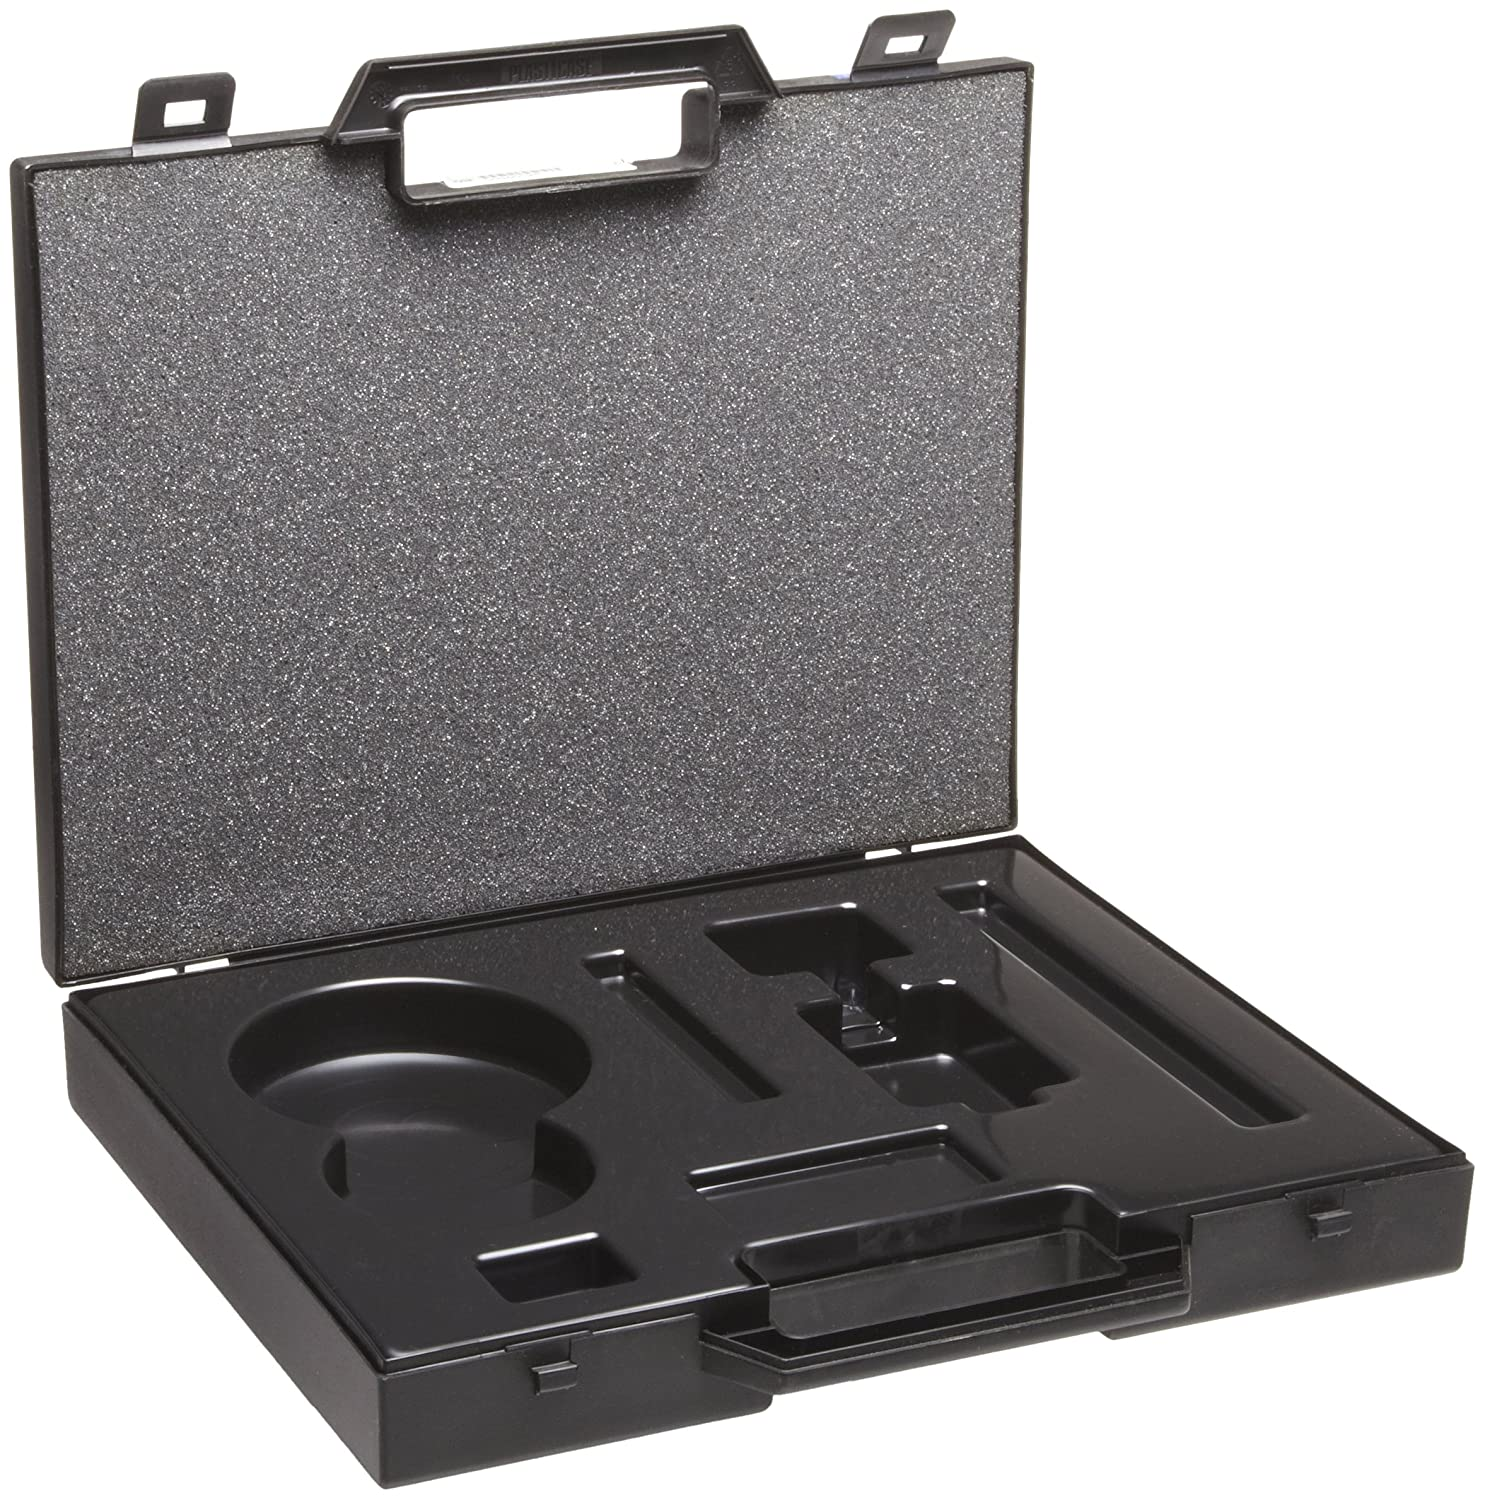 Brown & Sharpe TESA 00960025 Protective or Plastic Carrying Case for Tri-O-Bor Inside Micrometer, 30-60mm Application Range